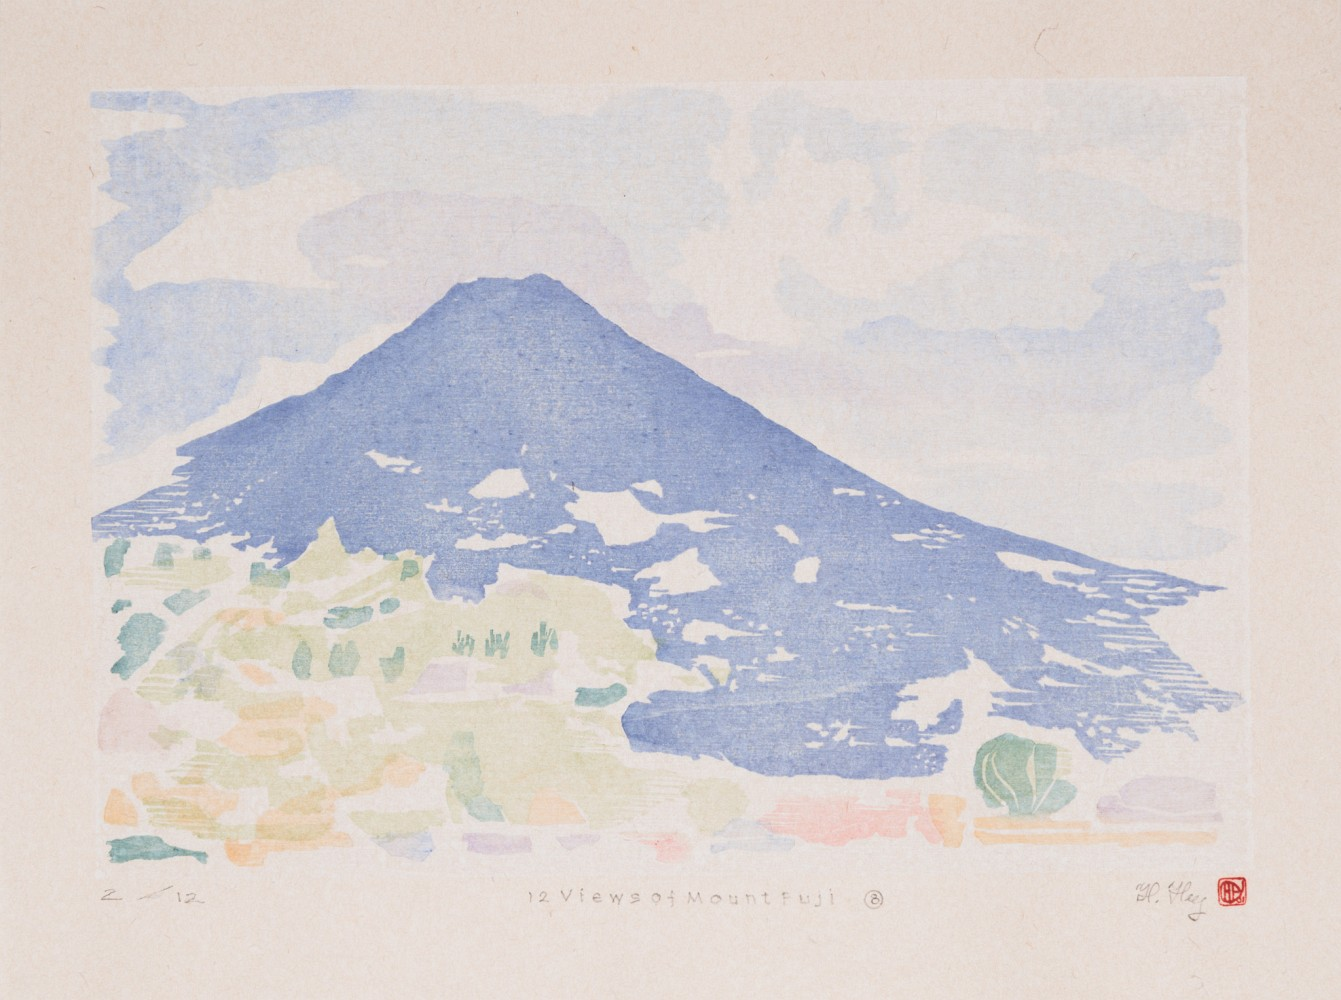 Full image of artwork 12 Views of Mount Fuji #8